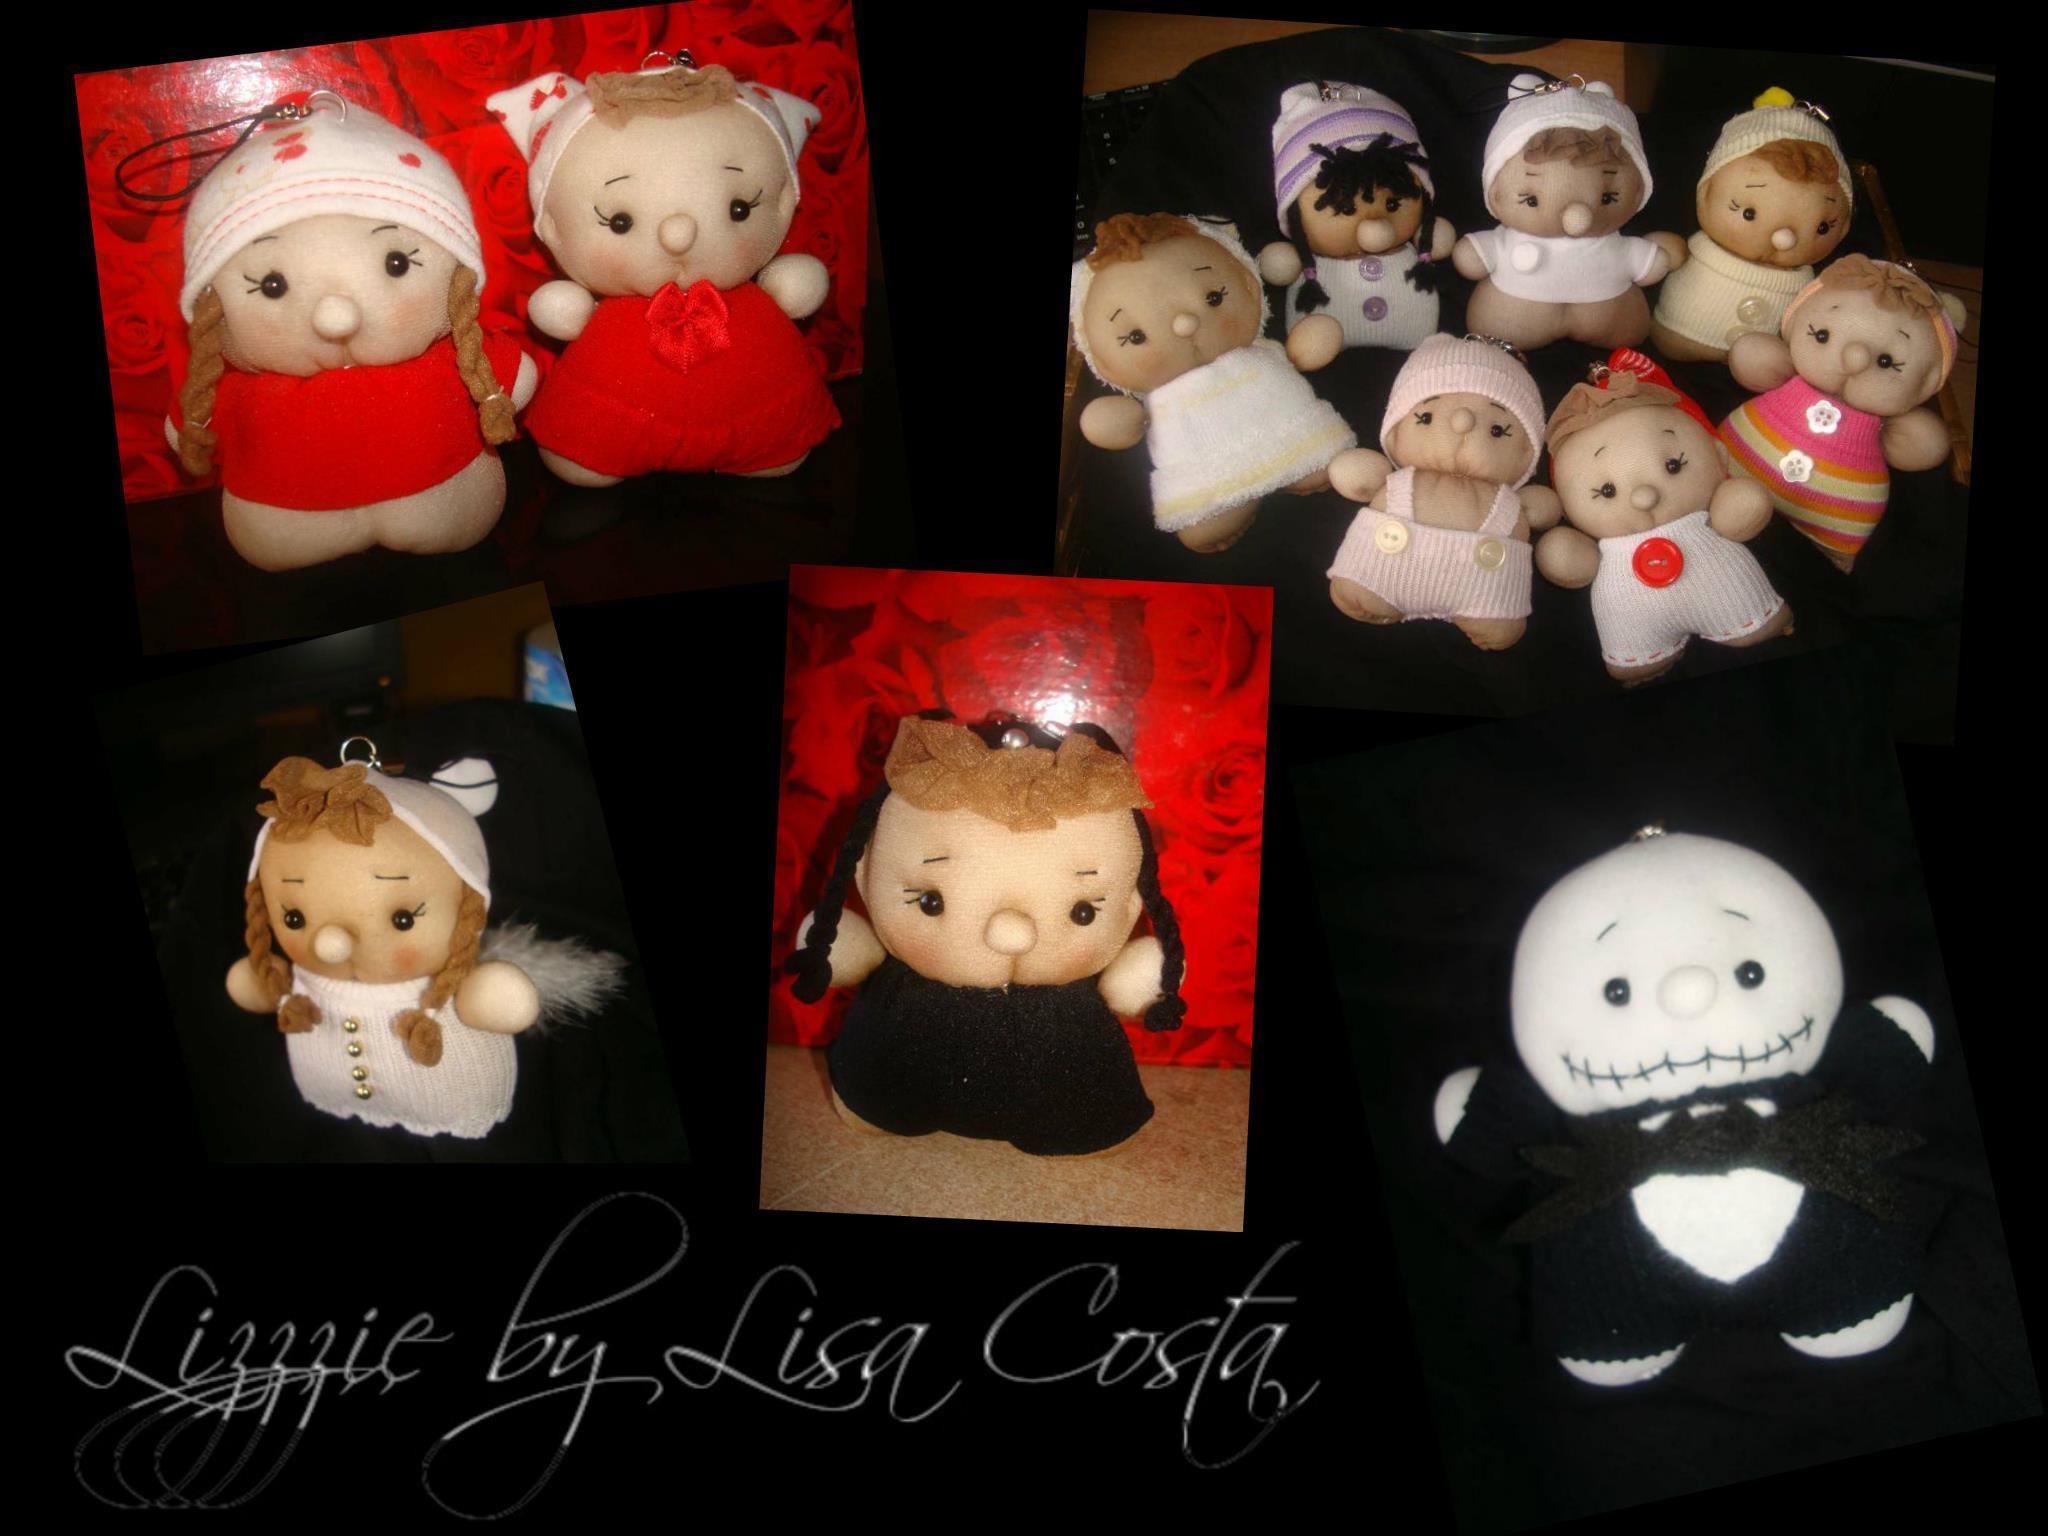 Lizzzie by Lisa Costa – Sock Dolls and more